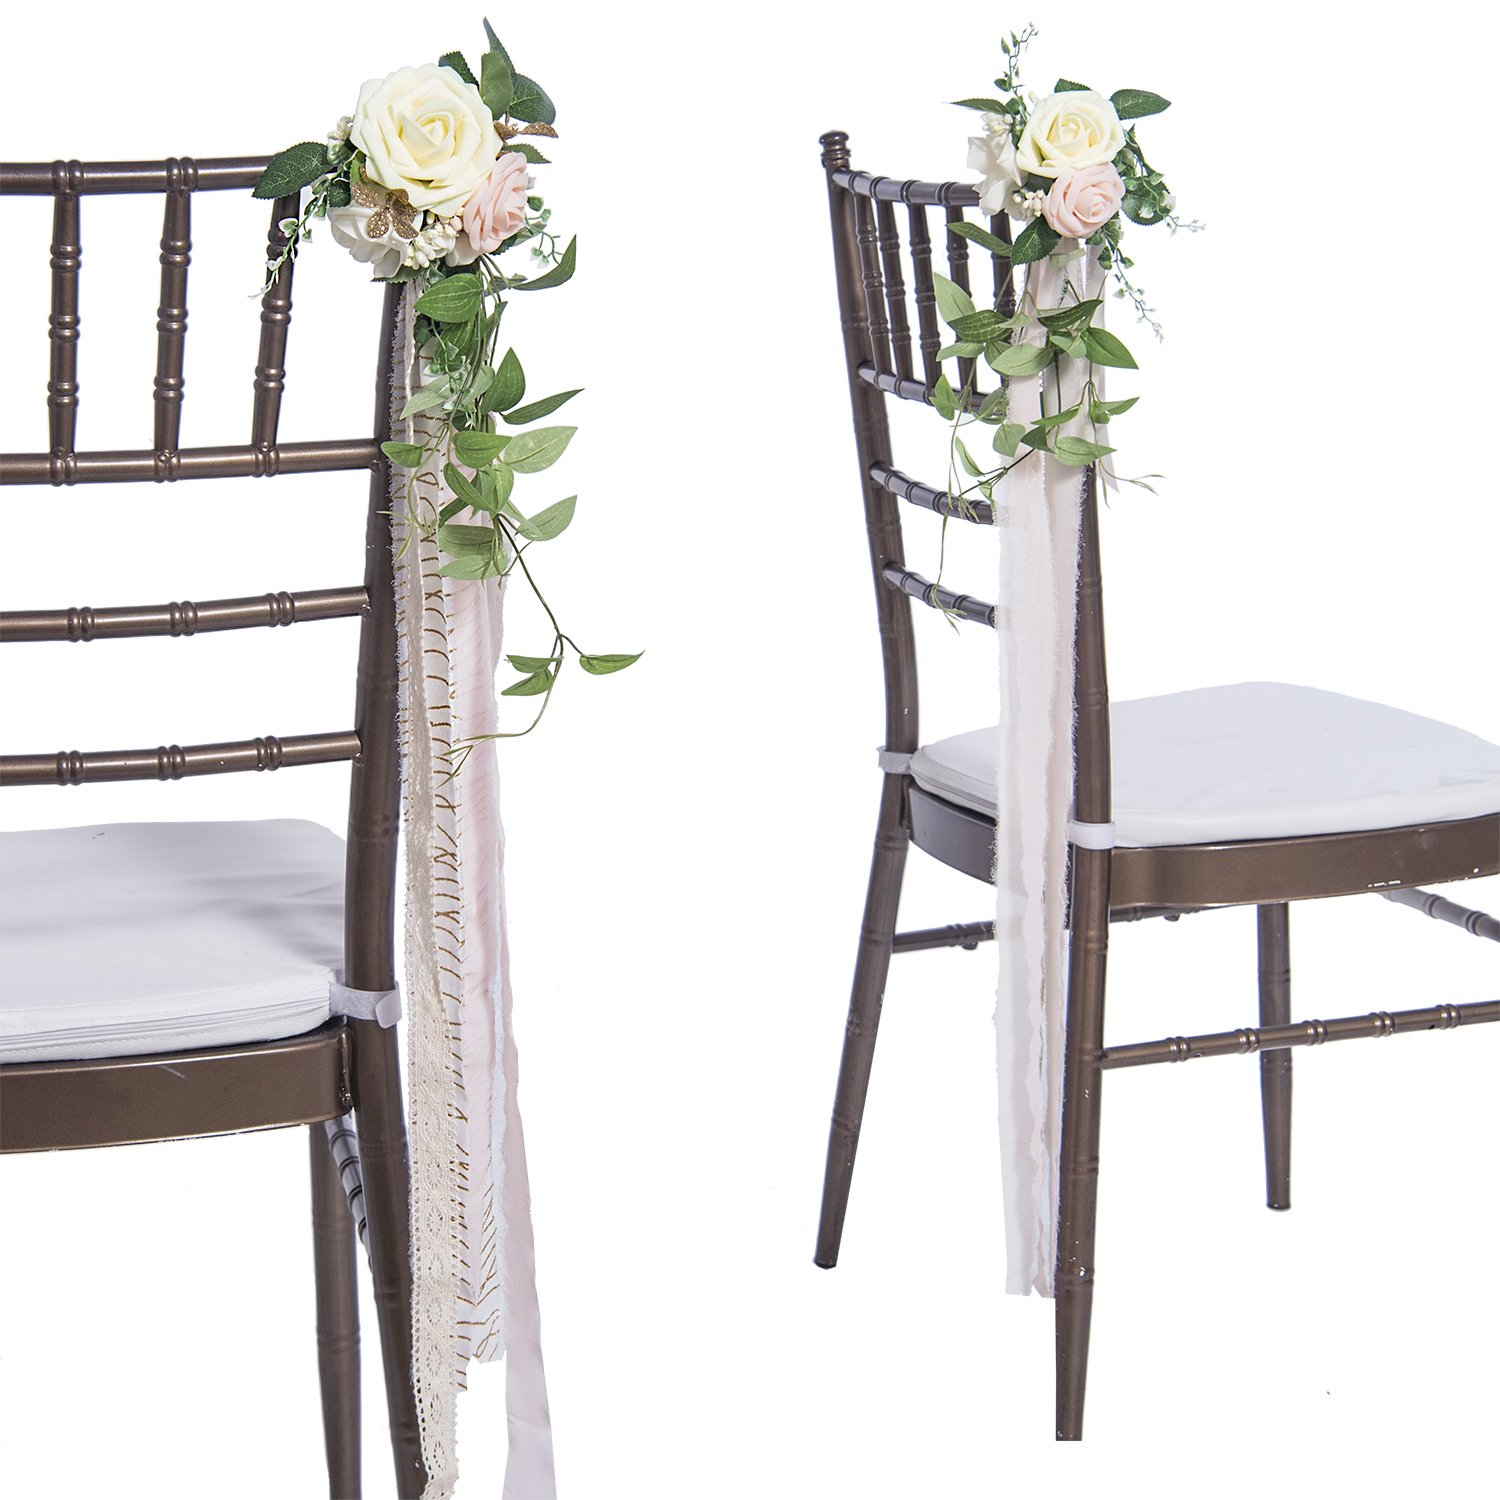 Ling's moment Wedding Aisle Decorations Flowers for Chairs Set of 8 Cream Blush Pew Flowers with Tails